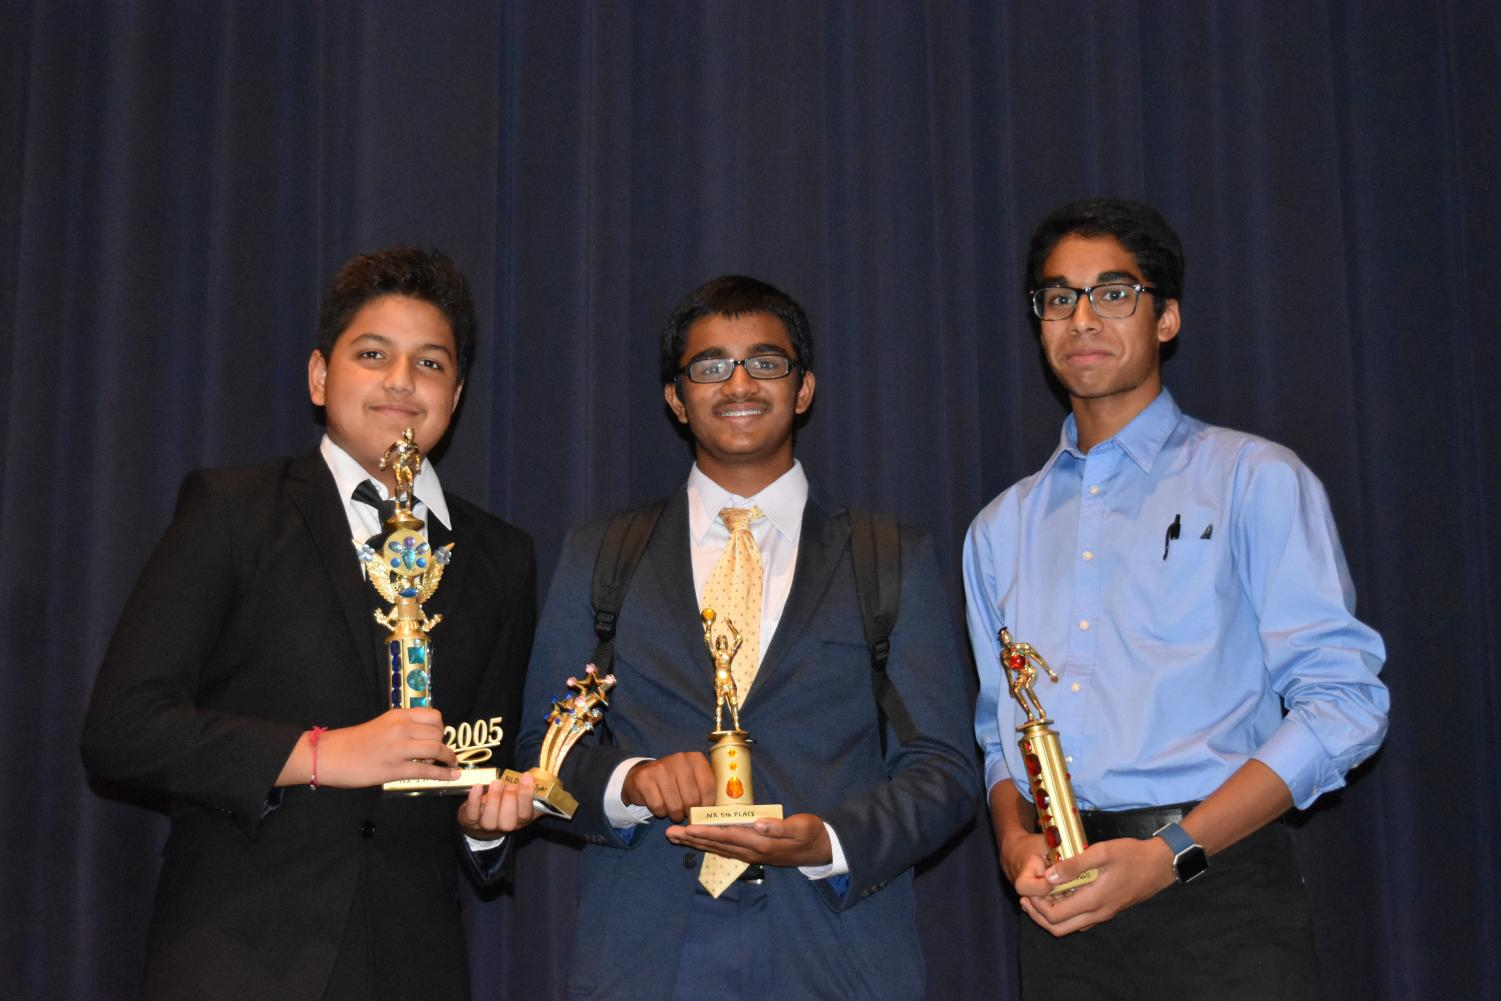 Novice+Extemporaneous+Speaking+medalists+pose+with+their+trophies.+Photo+courtesy+of+WHS+Speech+and+Debate.